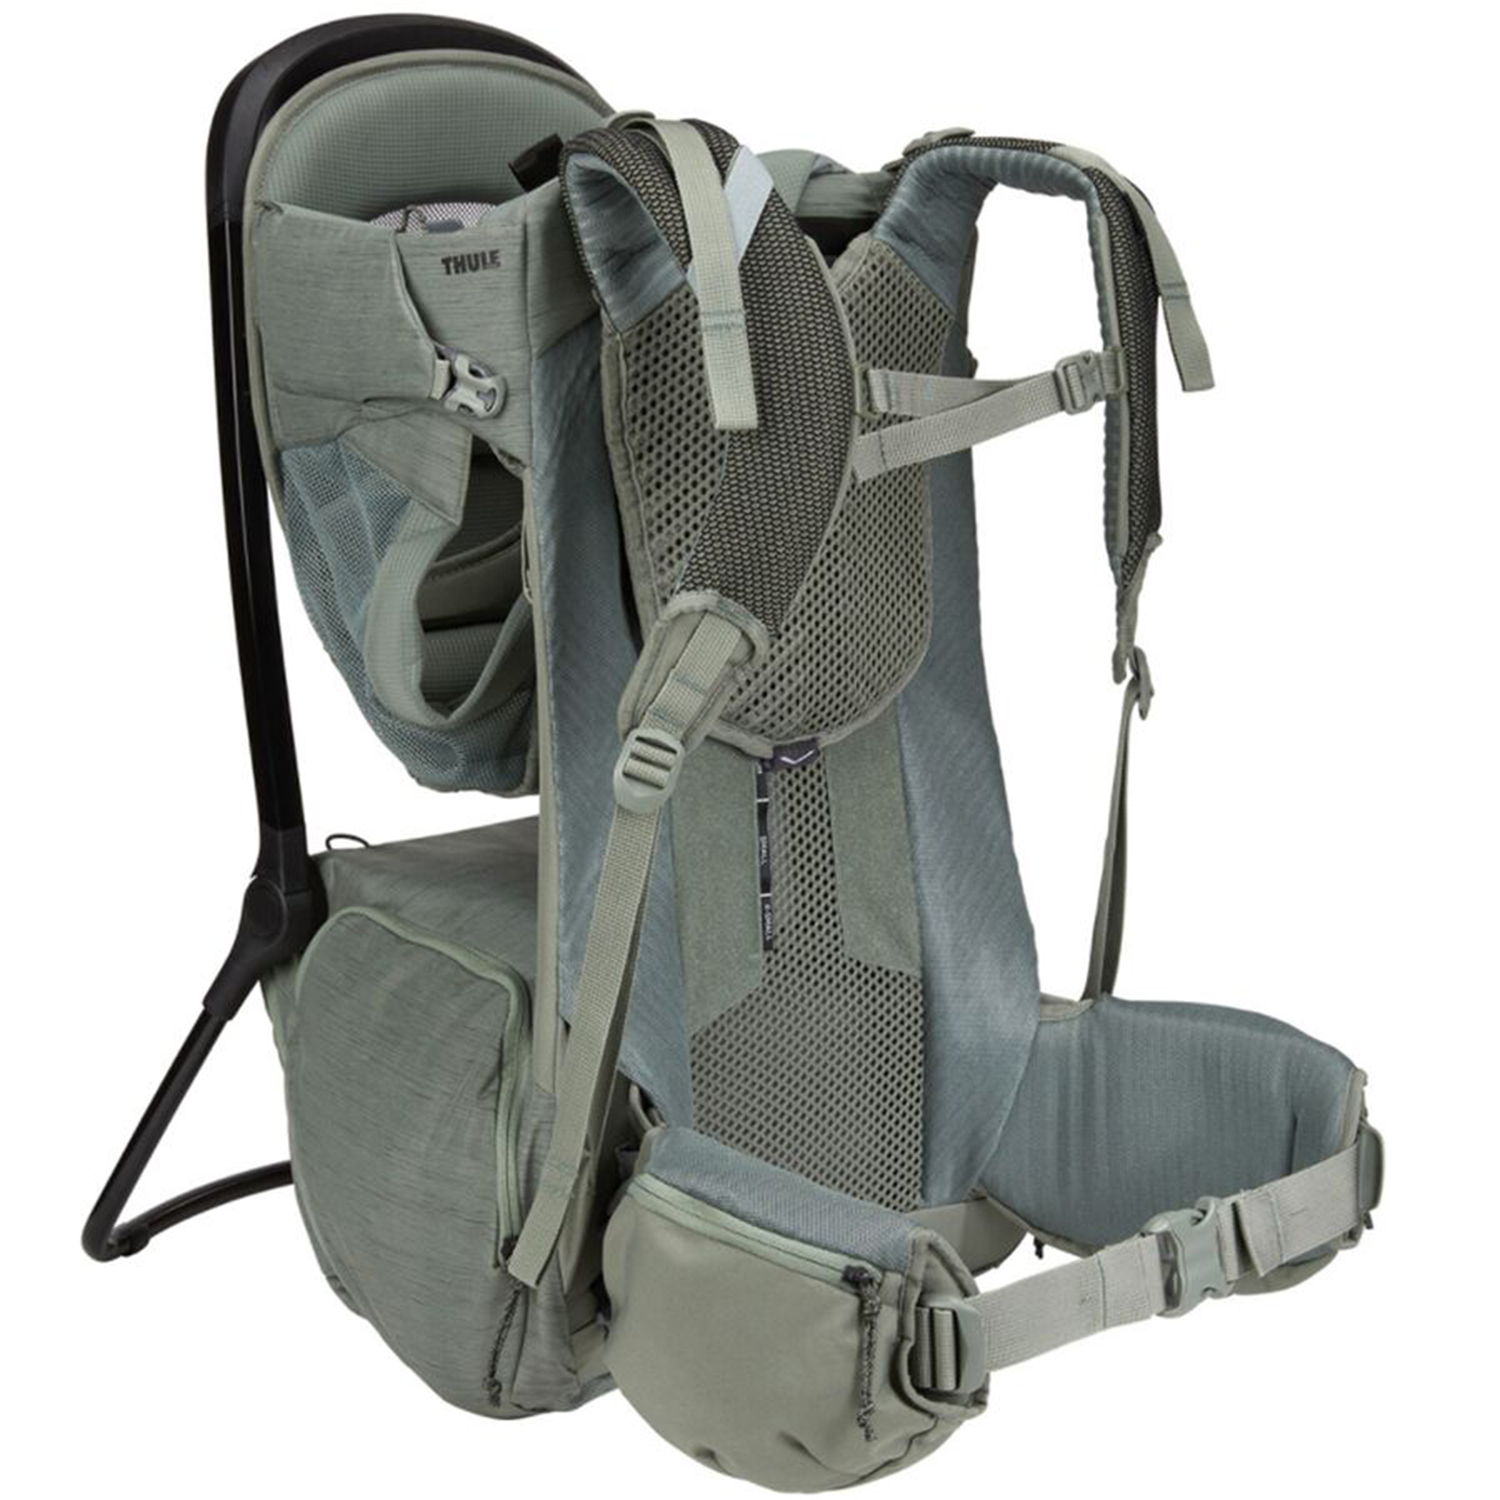 Best Hiking Carrier for Toddlers: Thule Sapling Child Carrier